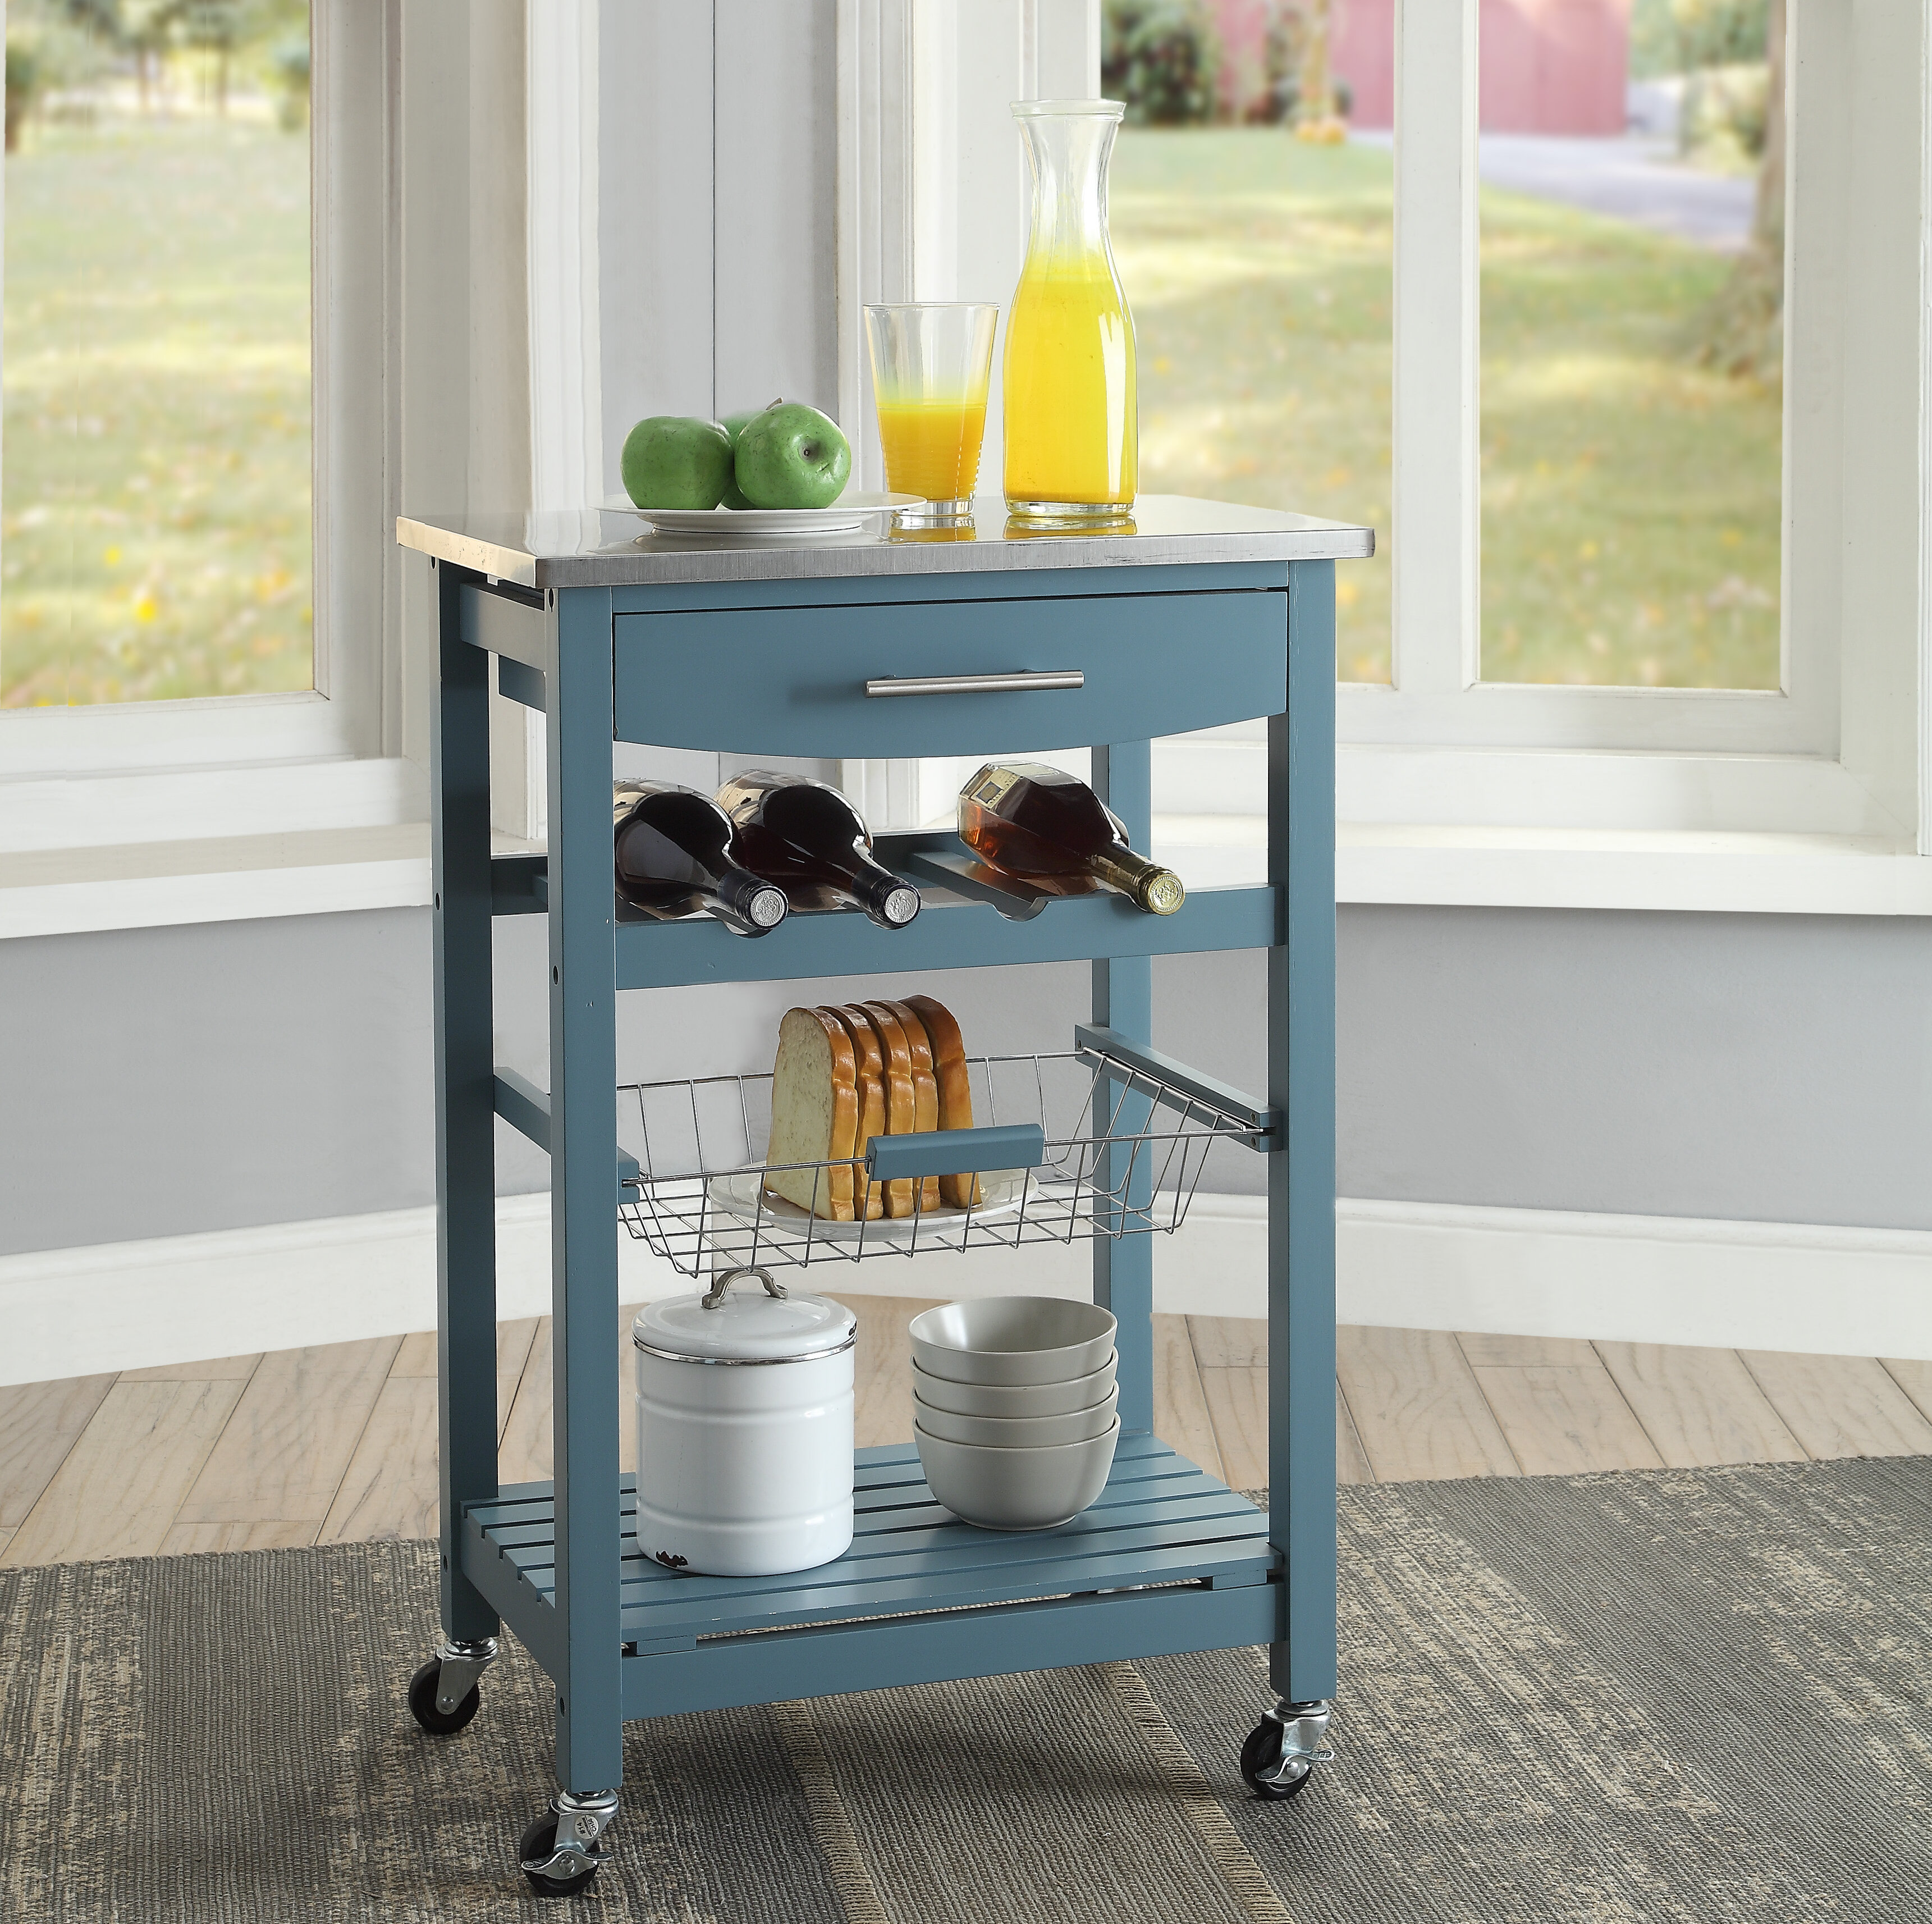 Highland Dunes Haviland Kitchen Cart With Stainless Steel Top Reviews Wayfair